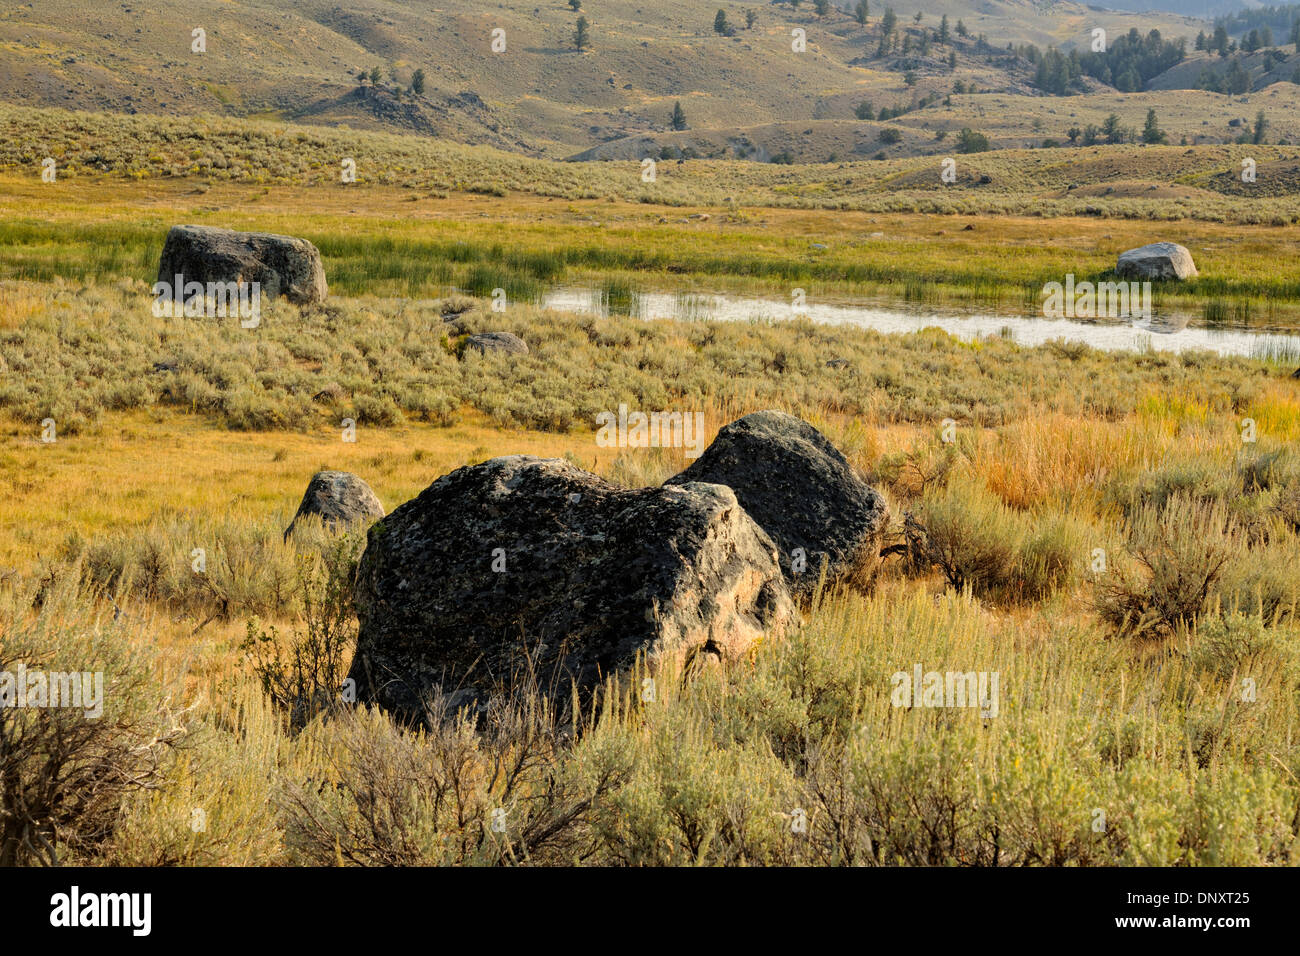 Erratic boulders and sage Ontario the Columbia Blacktail Plateau, Yellowstone NP, Wyoming, USA - Stock Image